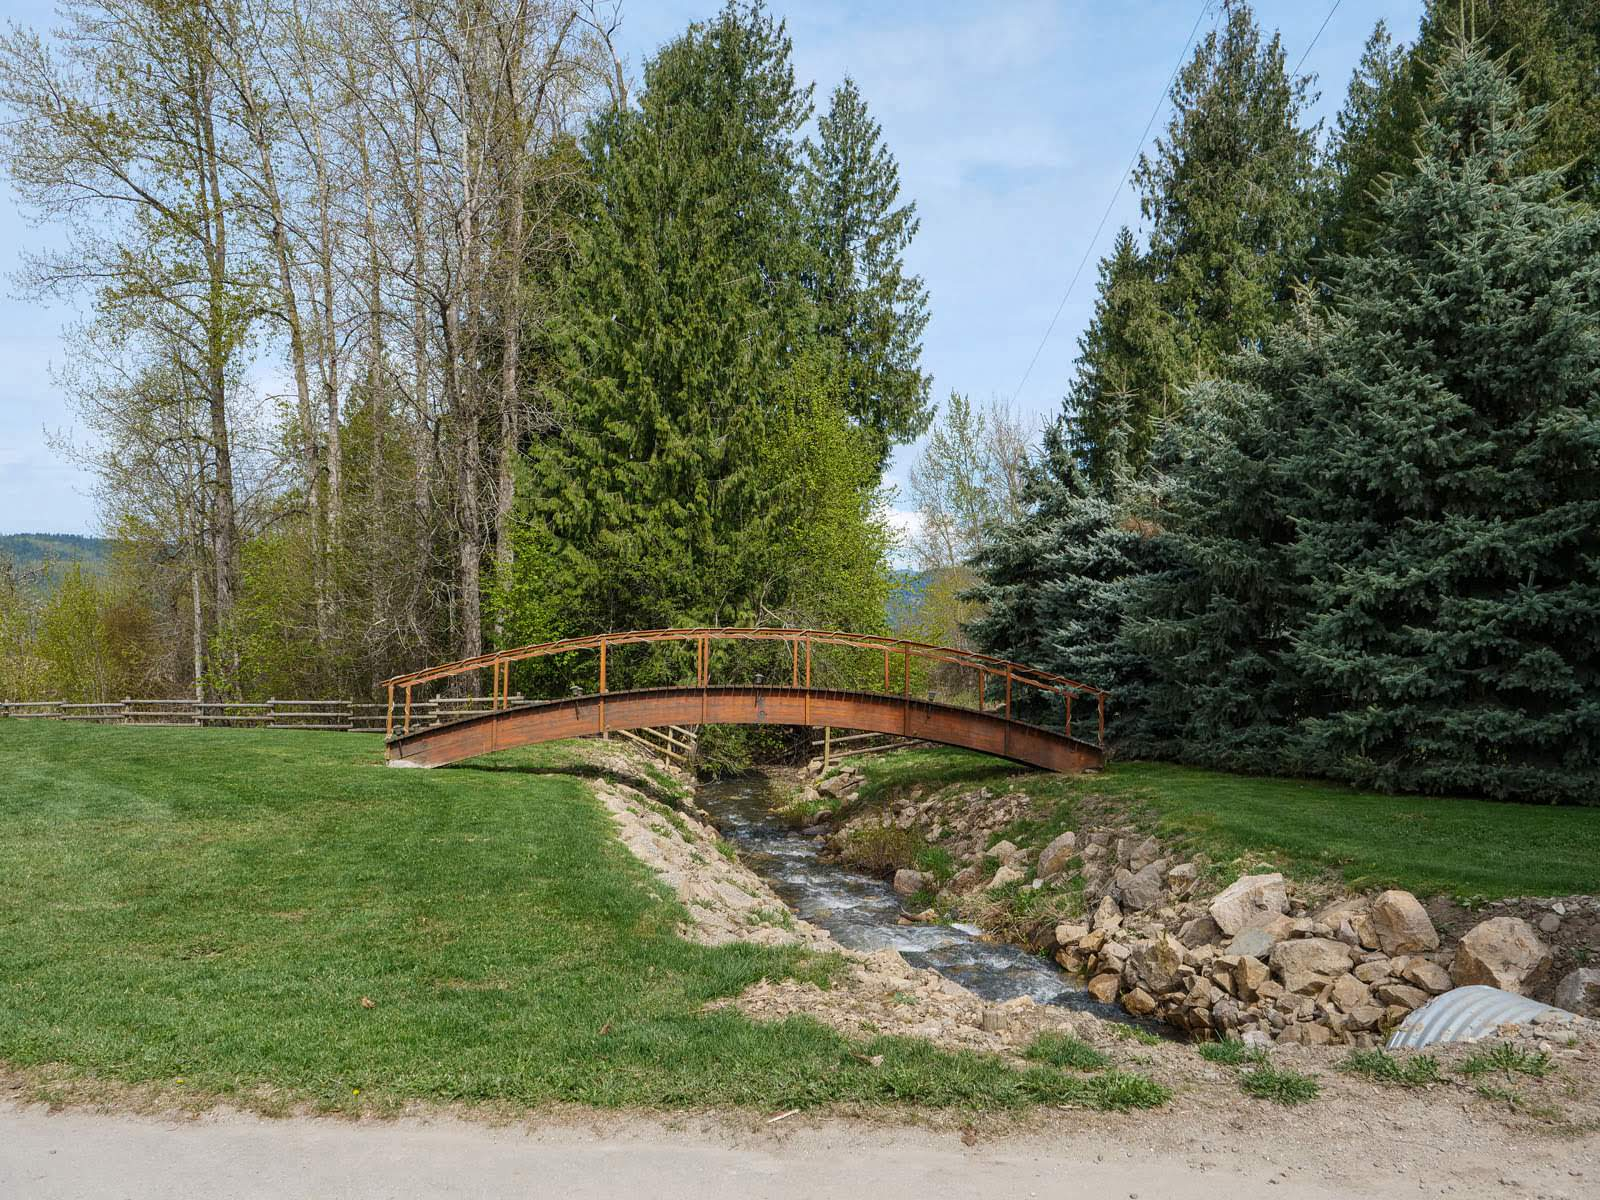 184 Monks Road, Grindrod, British Columbia    - Photo 16 - RP9119050735